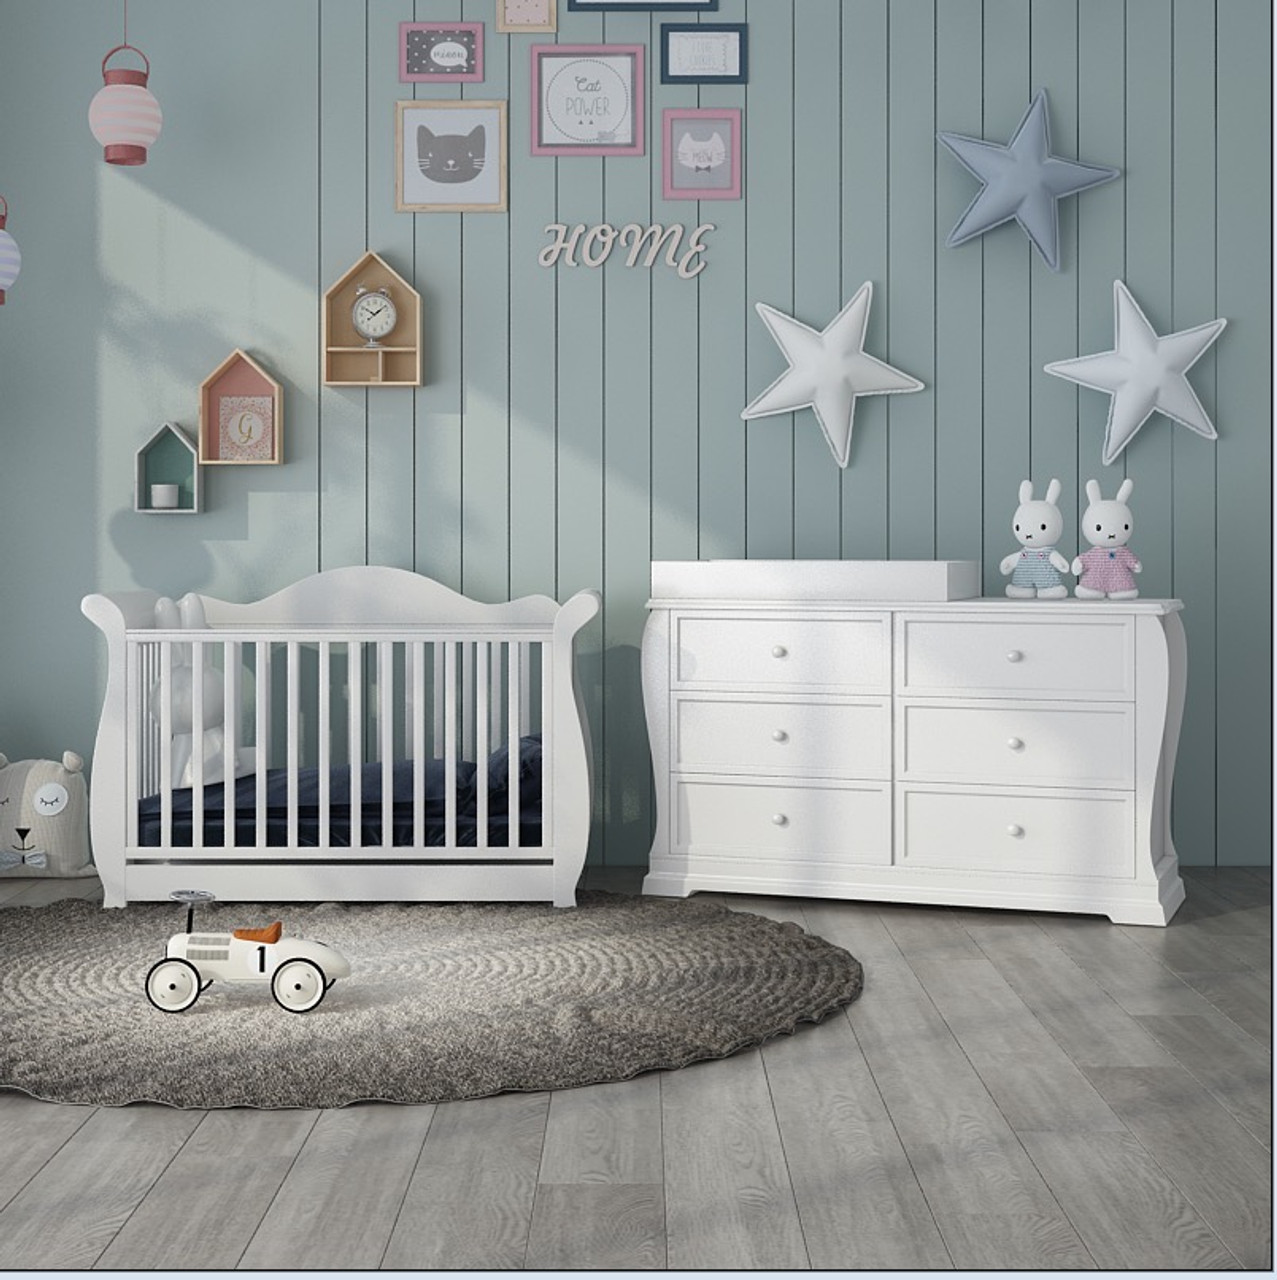 How to Ensure Your Baby's Safety While They Sleep in A Cot?